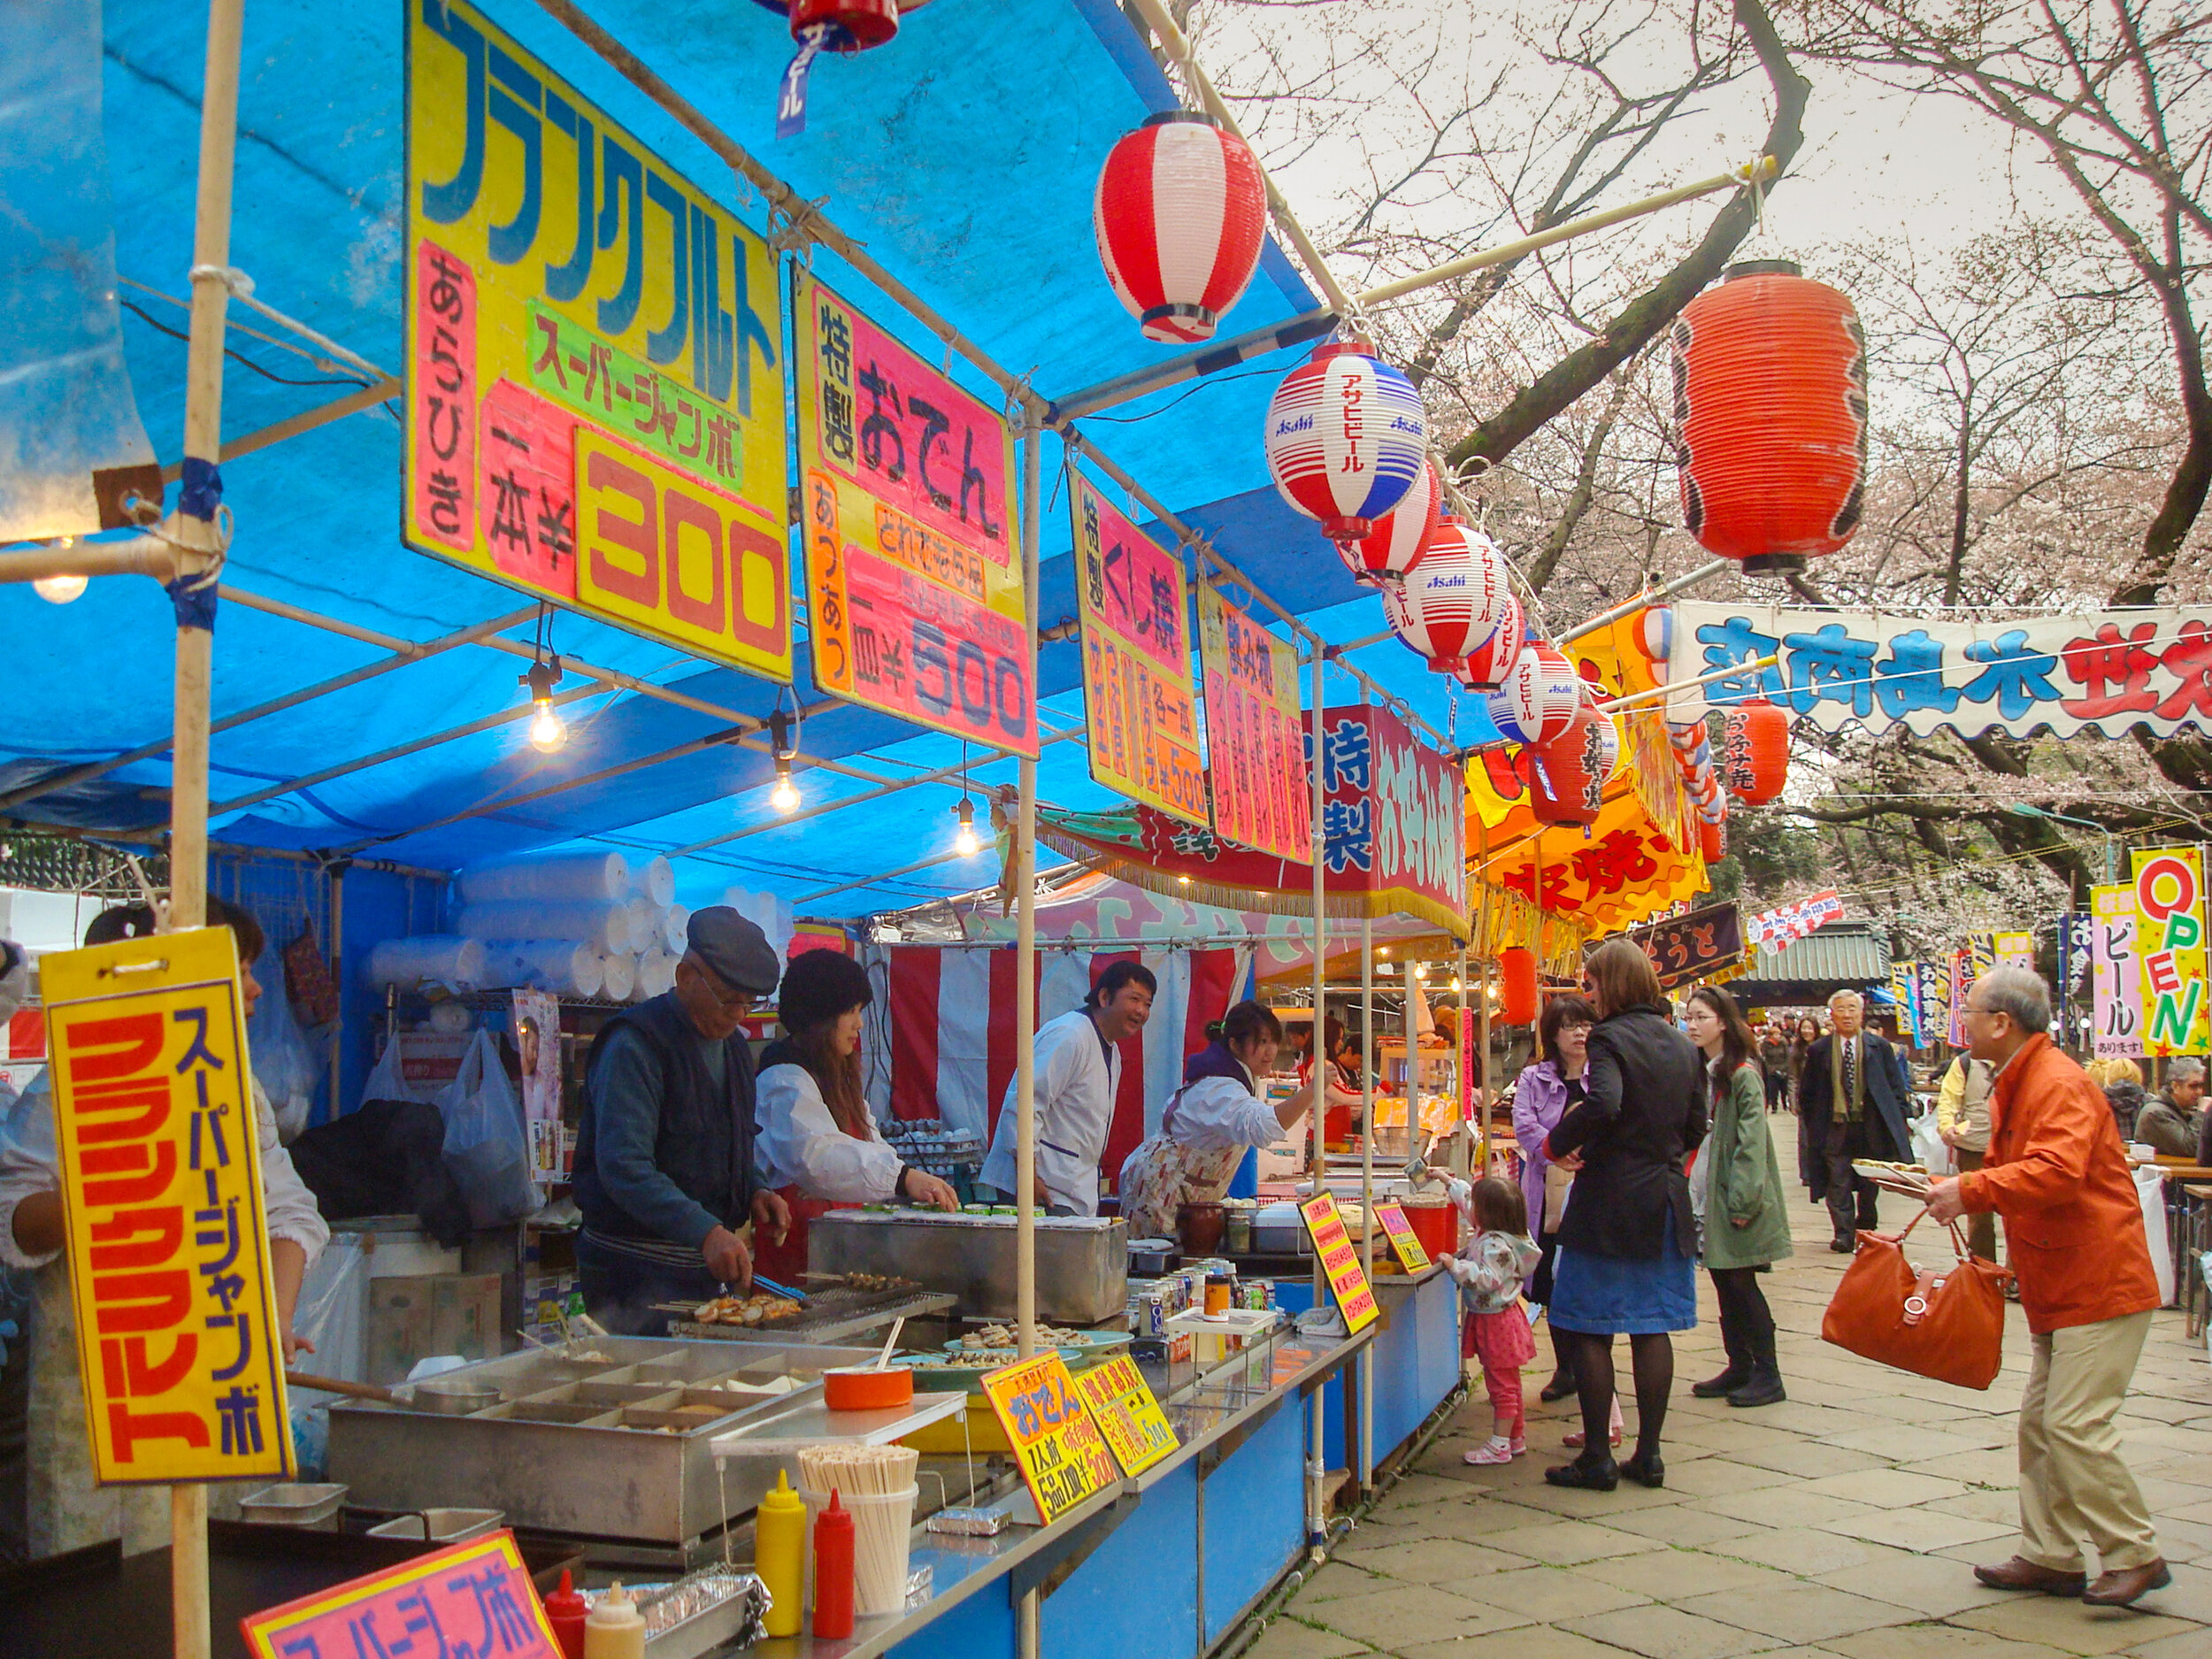 Japanese street food at a Tokyo festival.